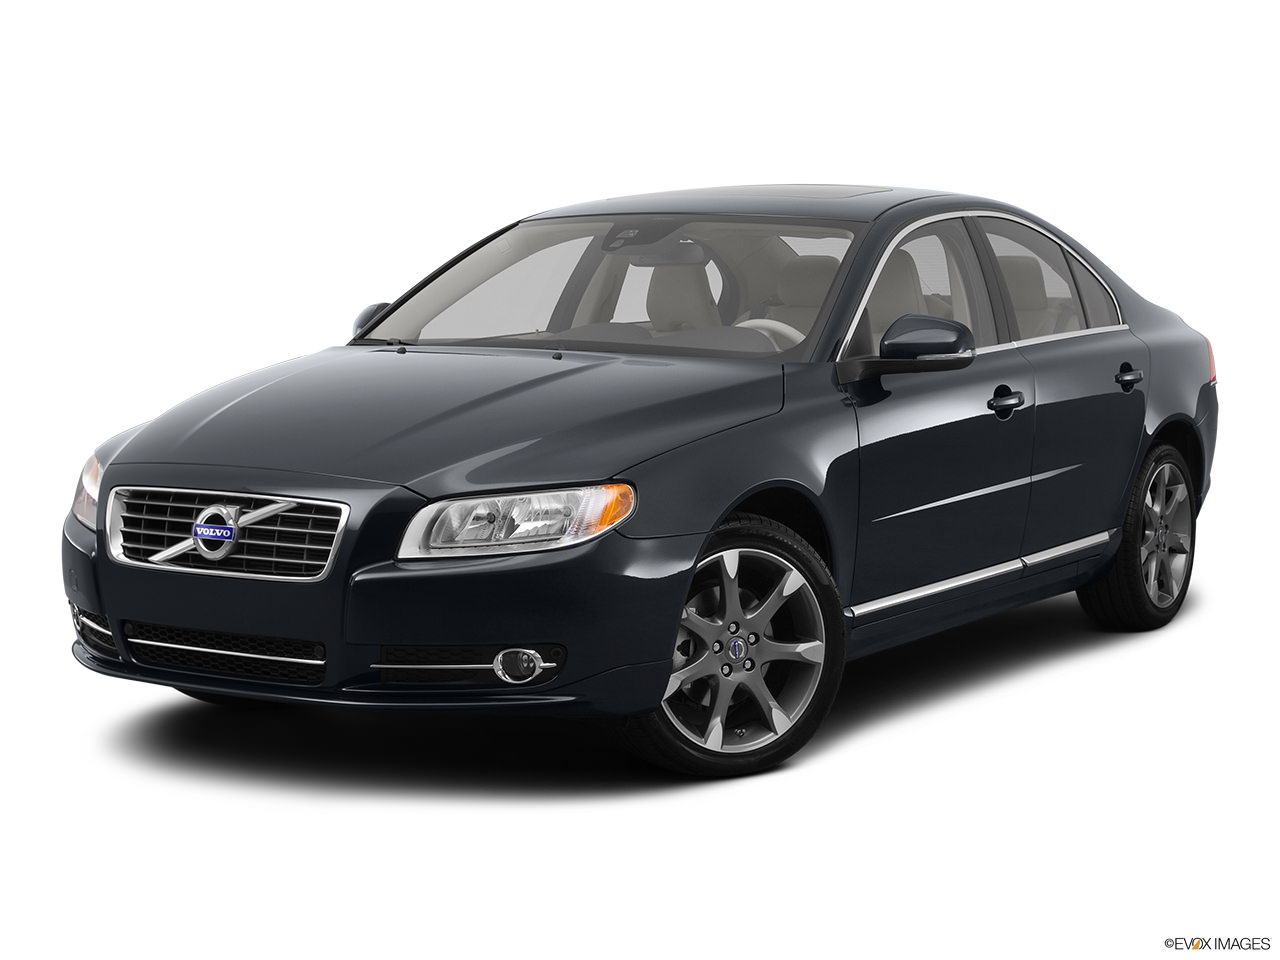 a buyer s guide to the 2012 volvo s80 yourmechanic advice rh yourmechanic com 2006 Volvo S80 2010 Volvo S80